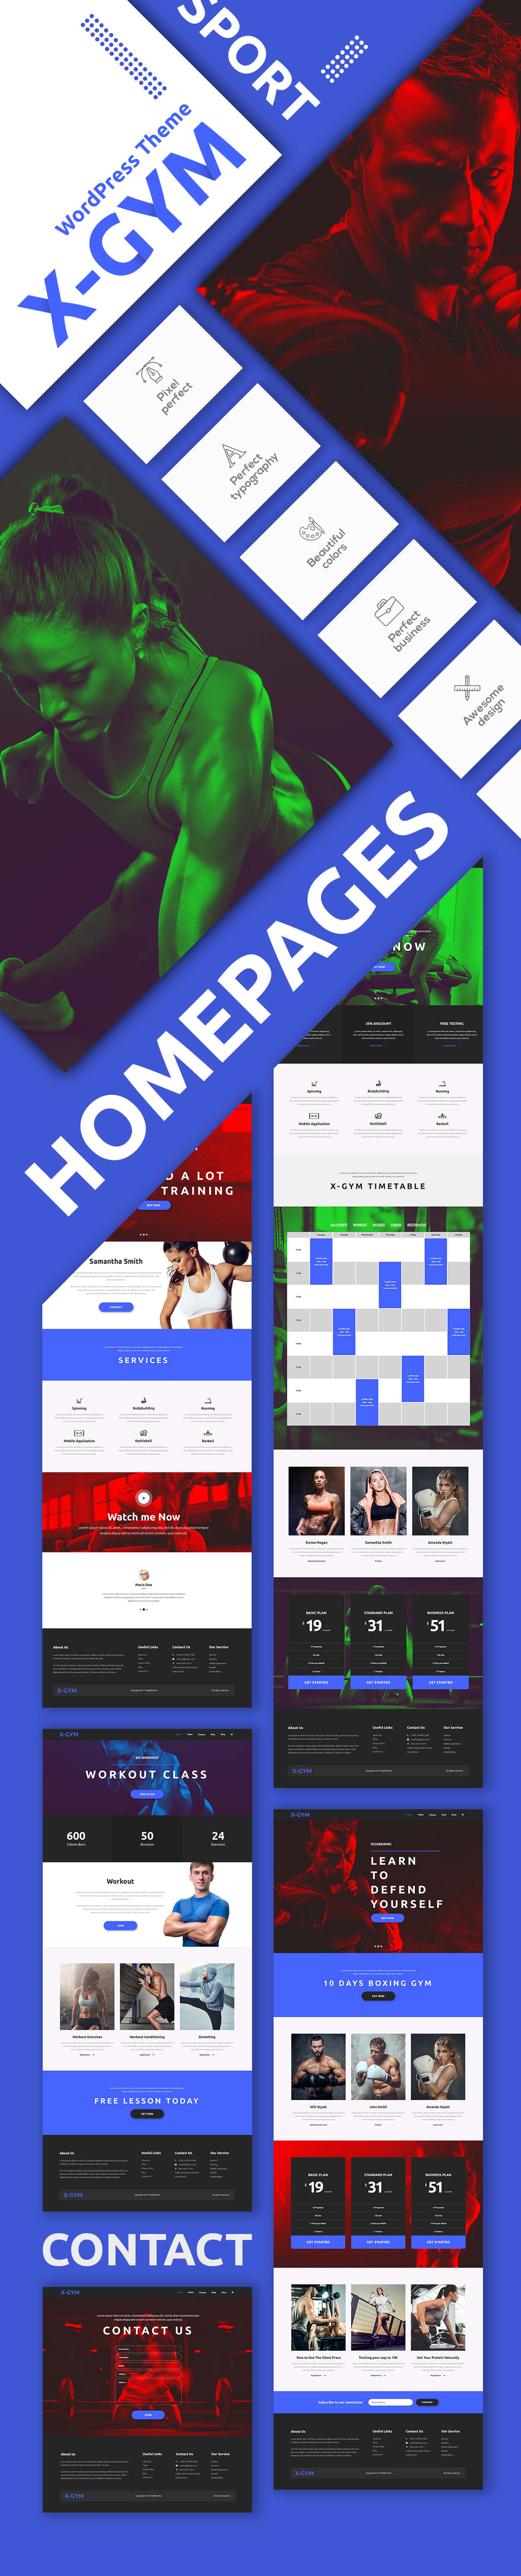 X-Gym - Fitness WordPress Theme for Fitness Clubs, Gyms & Fitness Centers - 3